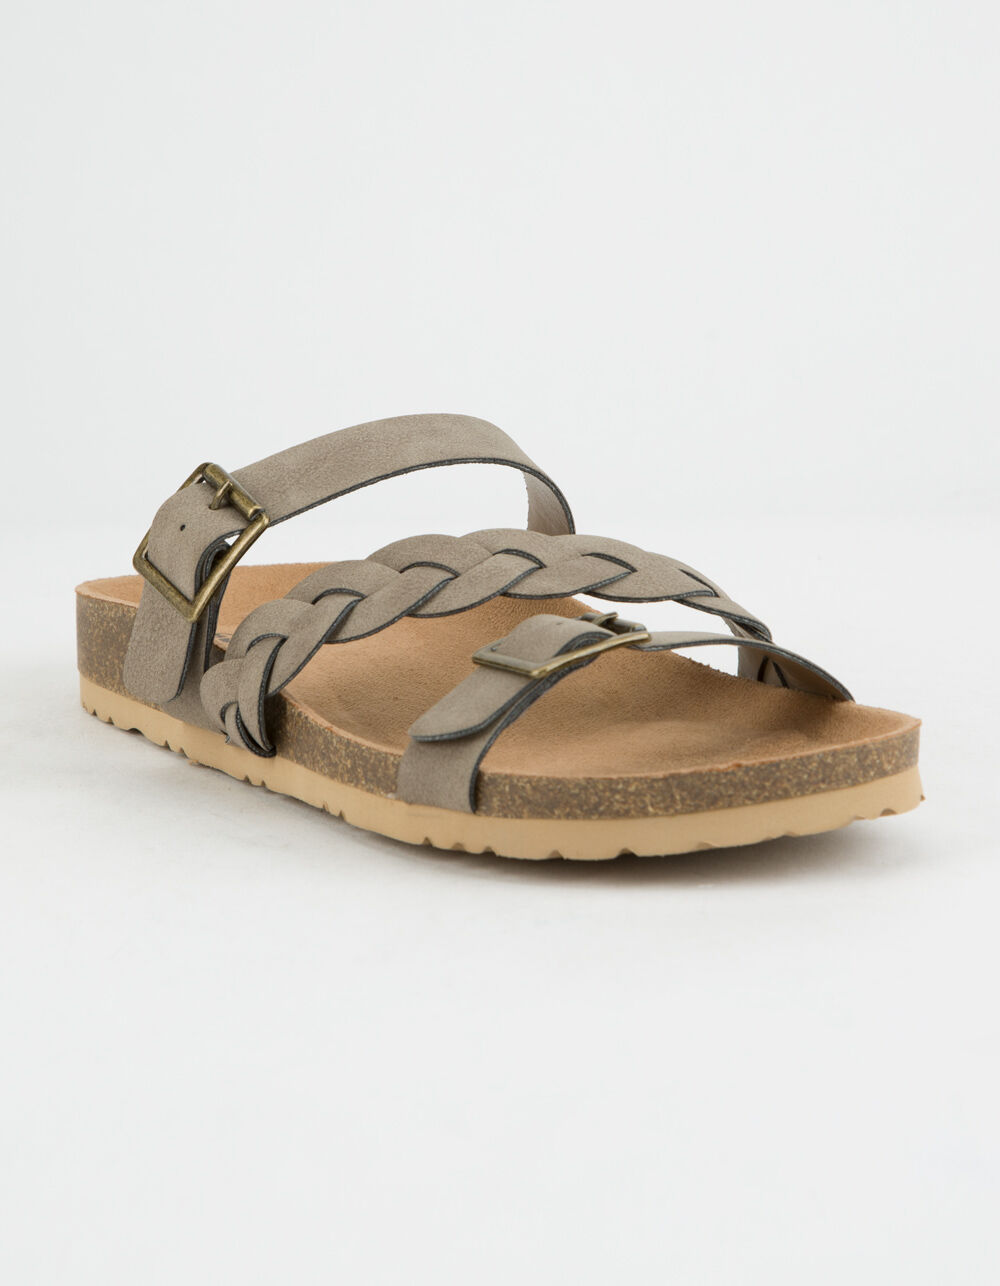 SODA Braided Strap Buckle Taupe Sandals